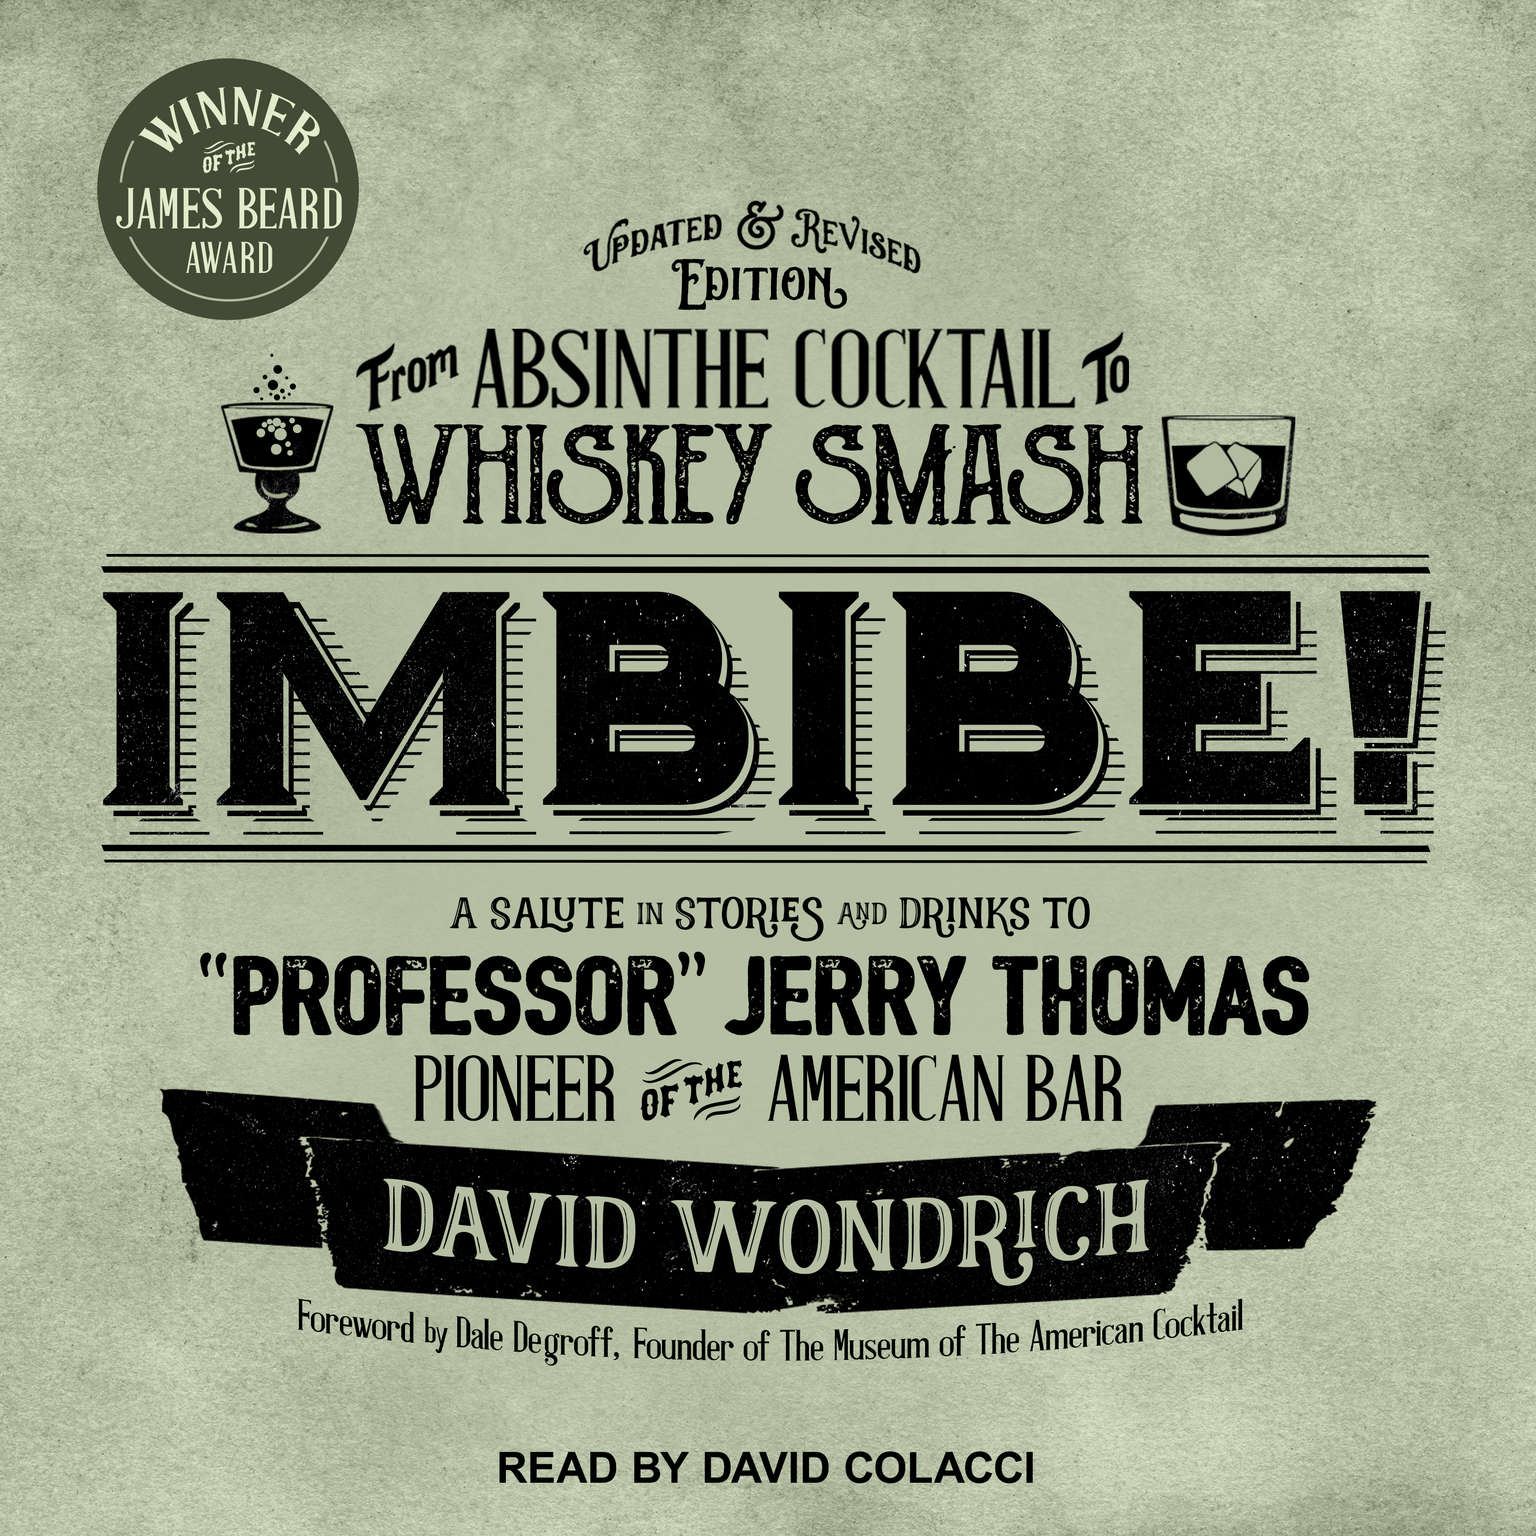 Imbibe! Updated and Revised Edition: From Absinthe Cocktail to Whiskey Smash, a Salute in Stories and Drinks to Professor Jerry Thomas, Pioneer of the American Bar Audiobook, by David Wondrich